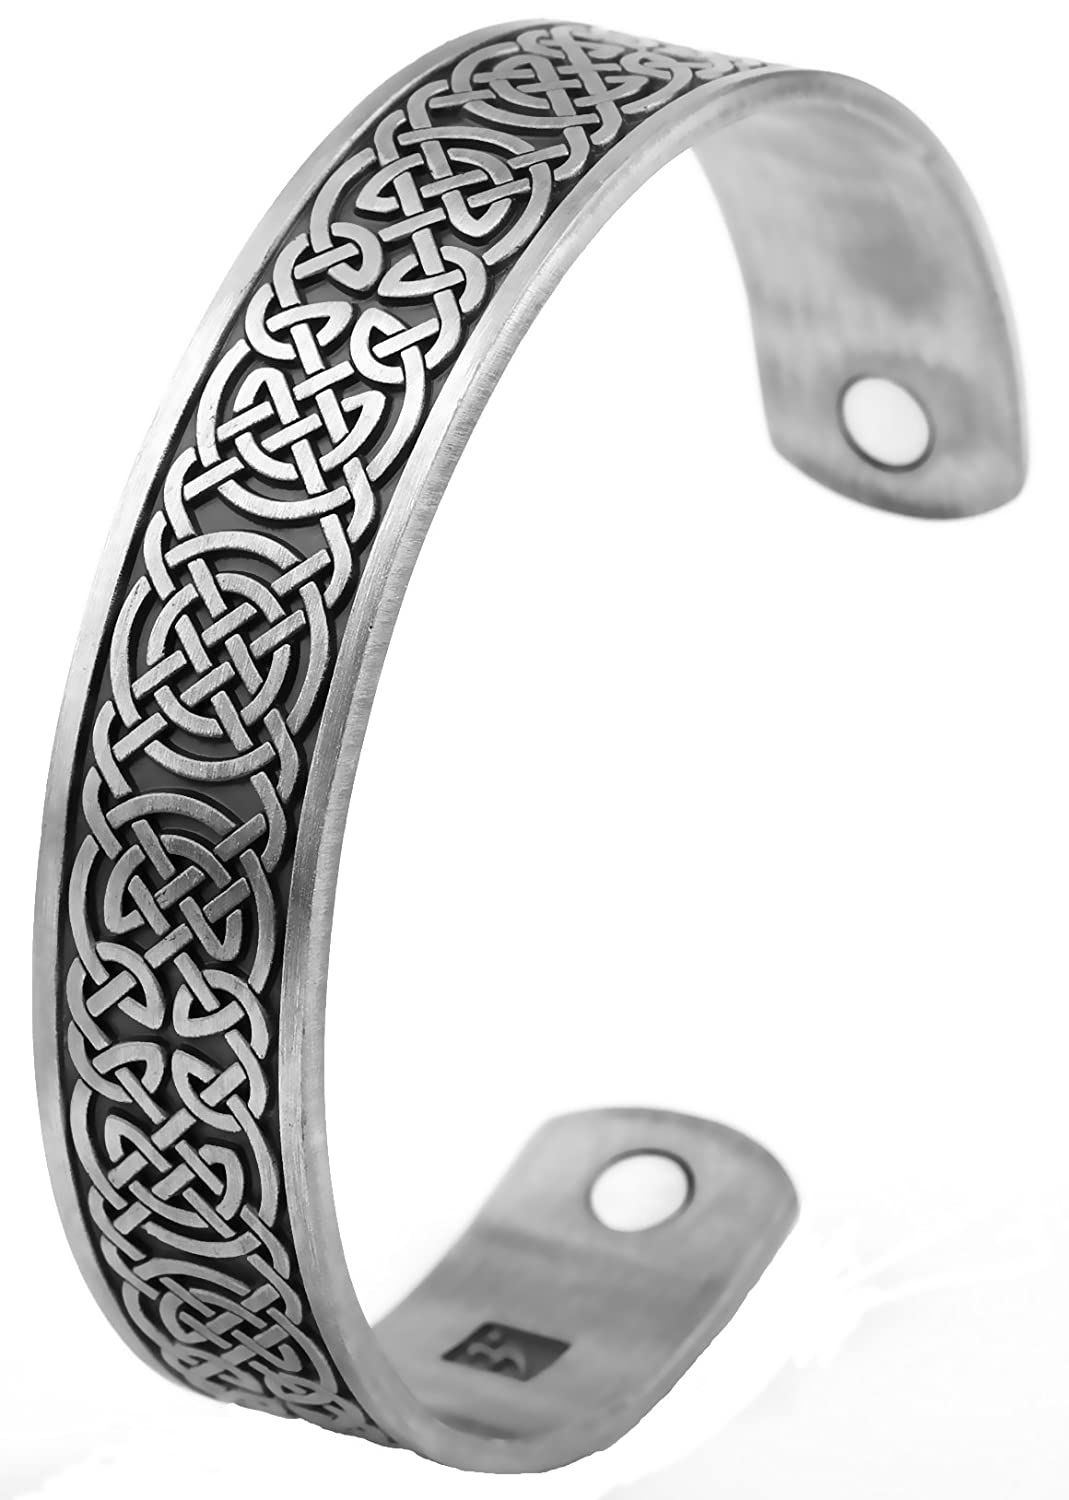 Irish Knot Magnetic Bangle Bracelet for Men/Women to Keep Health and Fit YiYou